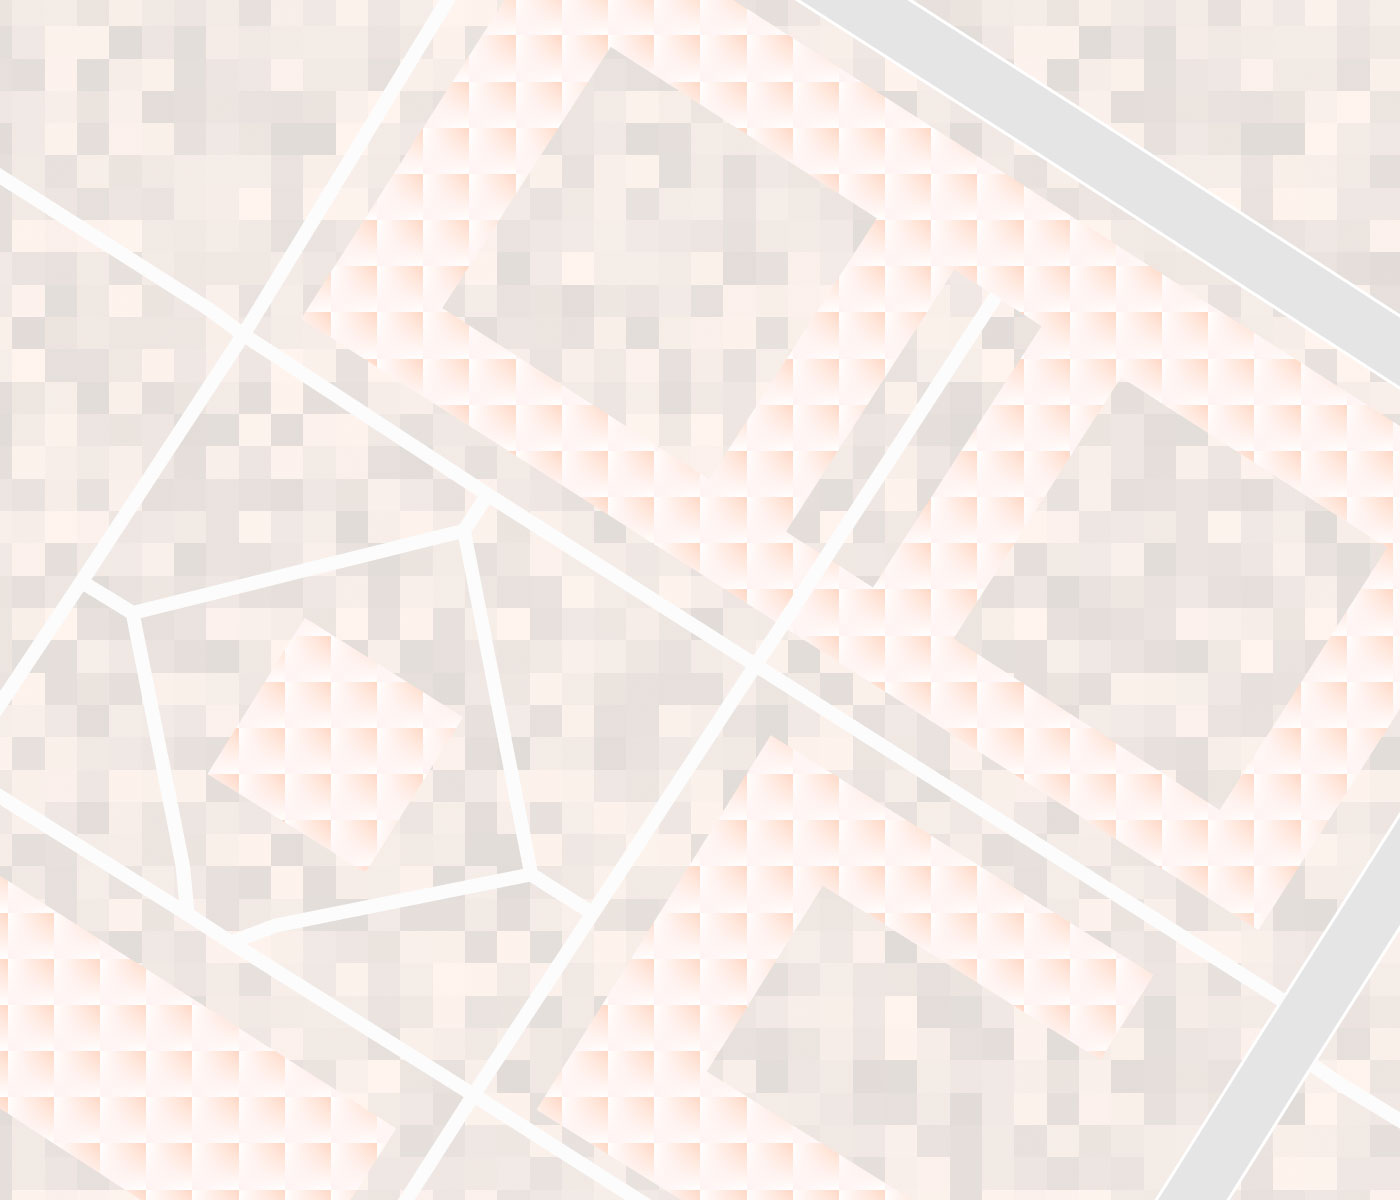 pixel-map.jpg